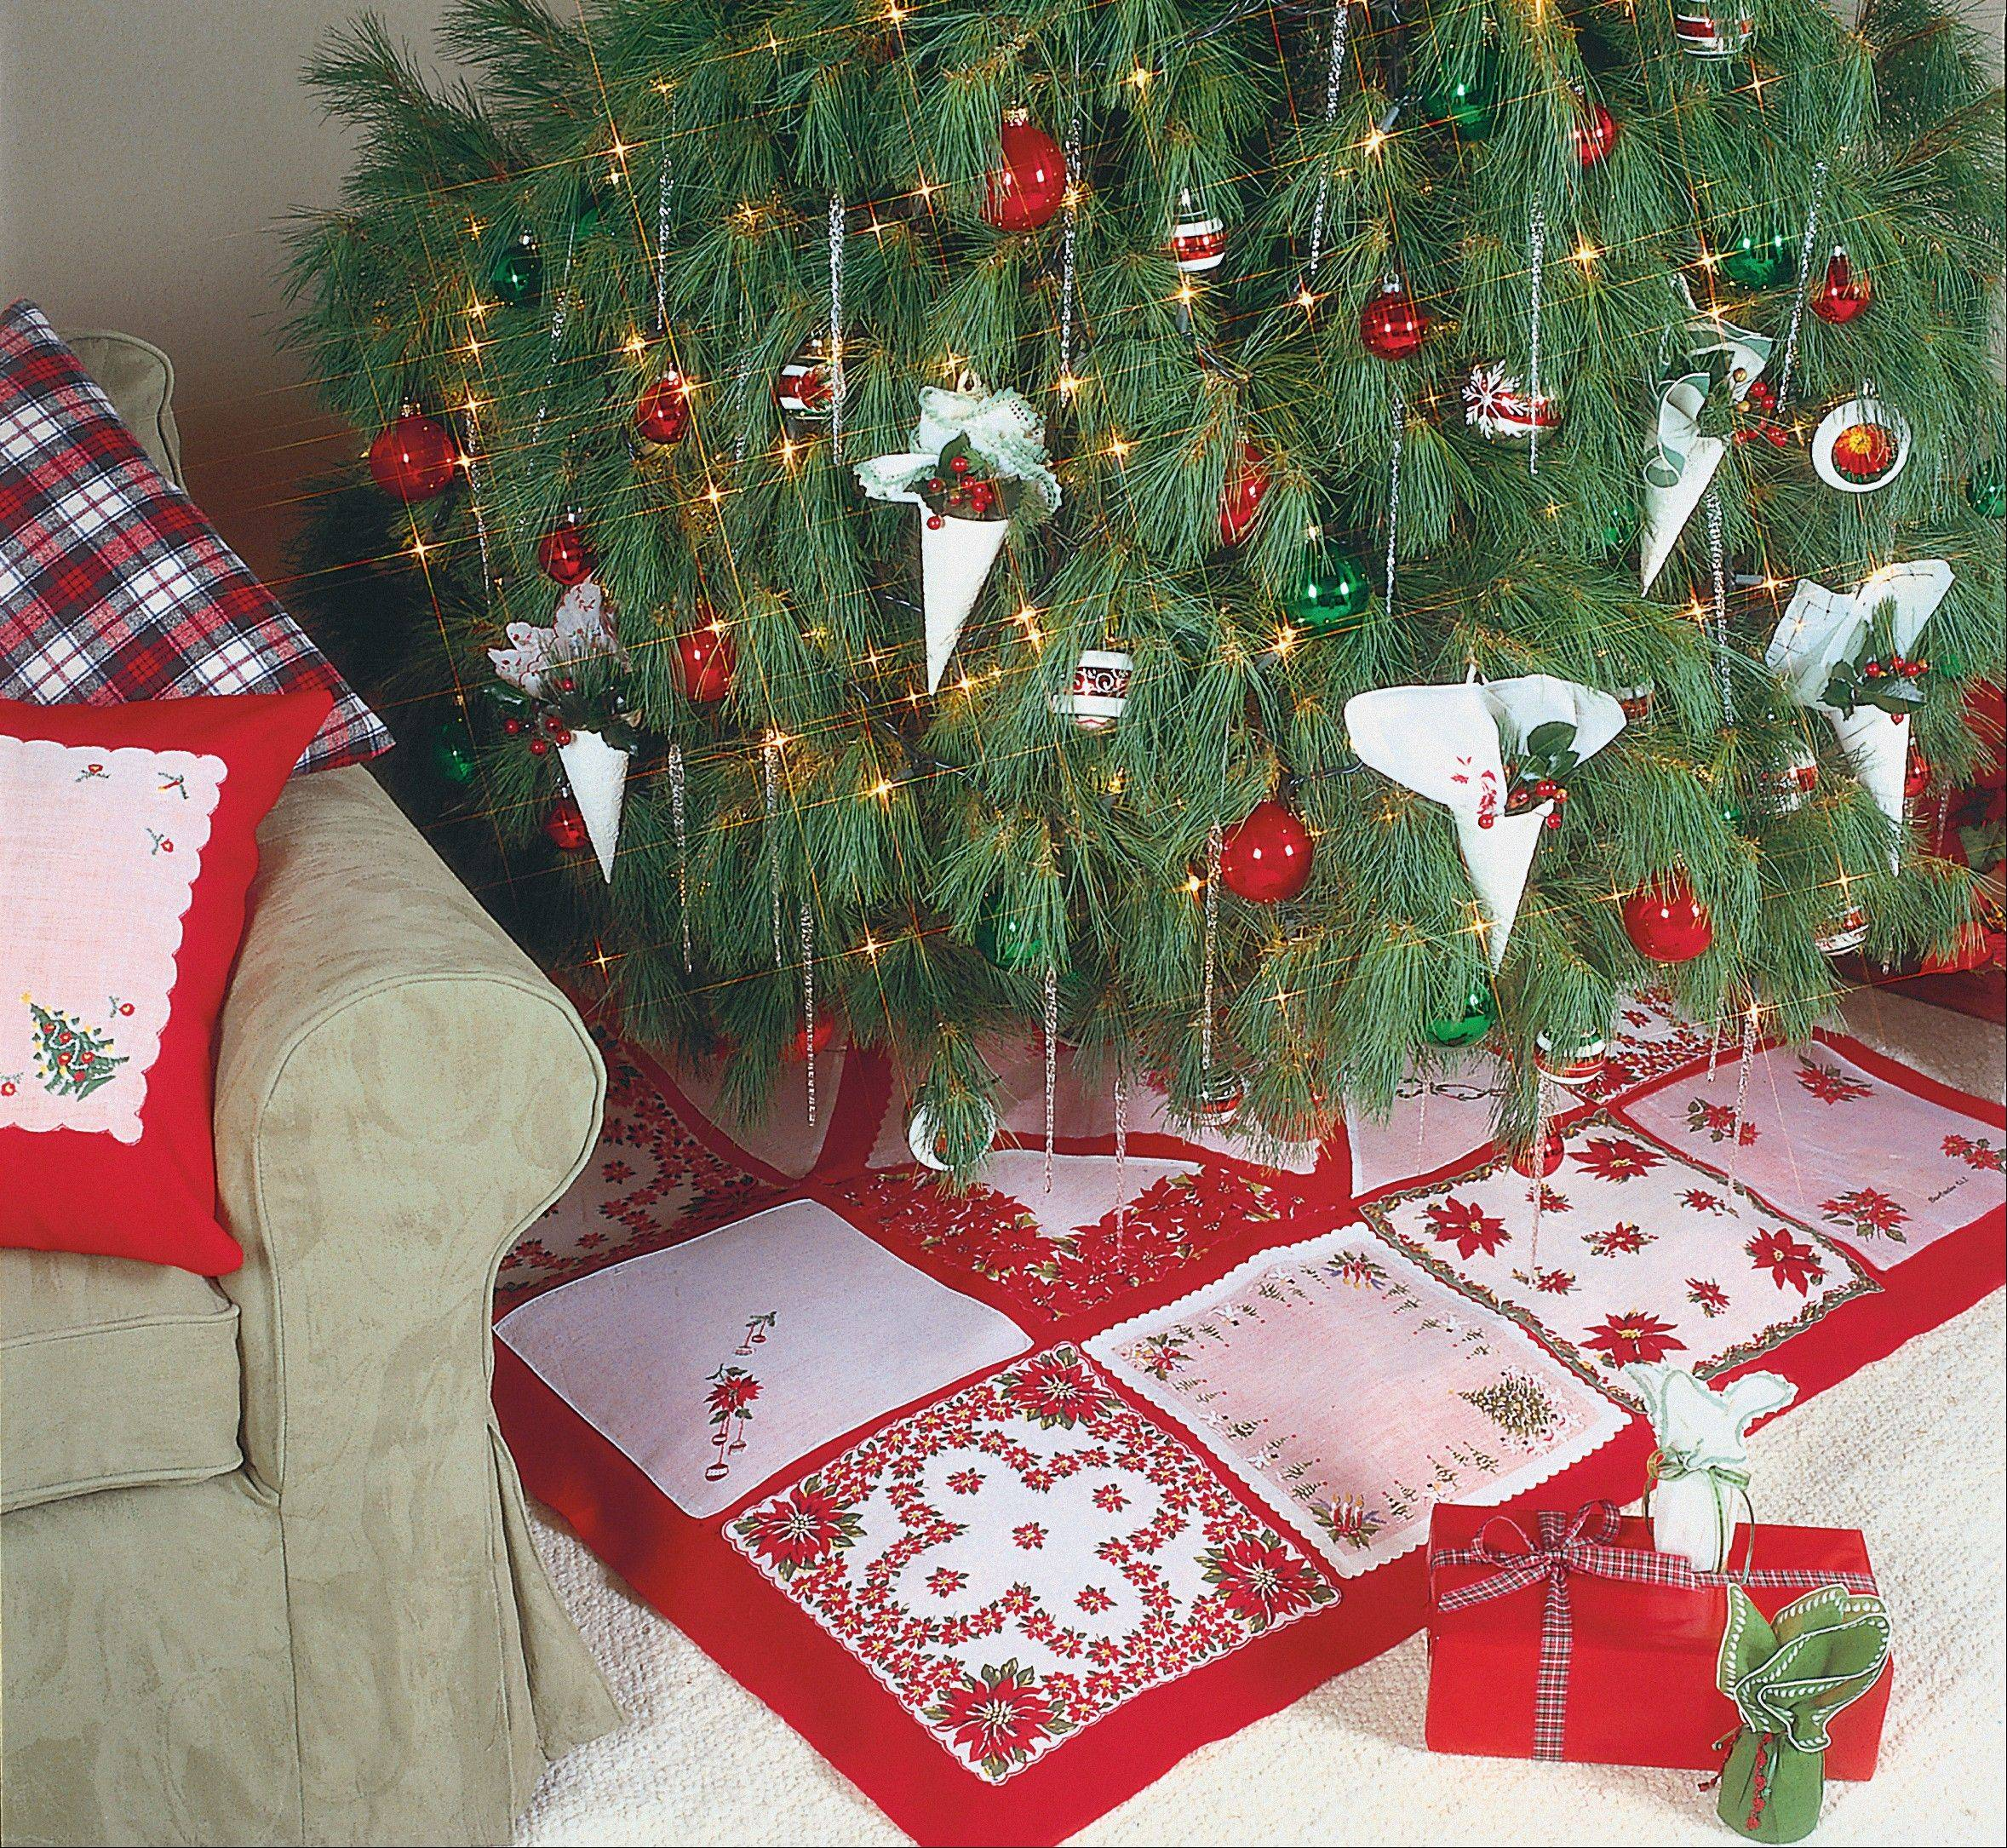 2. Holiday hankies: Shop thrift stores and antiques shops to find handkerchiefs sporting yuletide hues or motifs. Use the colorful squares to embellish everything from tree skirts and table runners to pillows and packages. To create a one-of-a-kind tree skirt, cut a square of red felt to your desired size. Arrange the handkerchiefs (or squares cut from holiday-patterned fabrics) on top of the square in a pleasing design. Fuse the hankies to the felt with spray adhesive or paper-backed adhesive web, such as HeatnBond. (For extra staying power, stitch around the handkerchief edges with a sewing machine.) Cut a slit from the back edge of the felt to the center of the square; cut out a 5-inch circle from the skirt's center to accommodate the tree trunk.